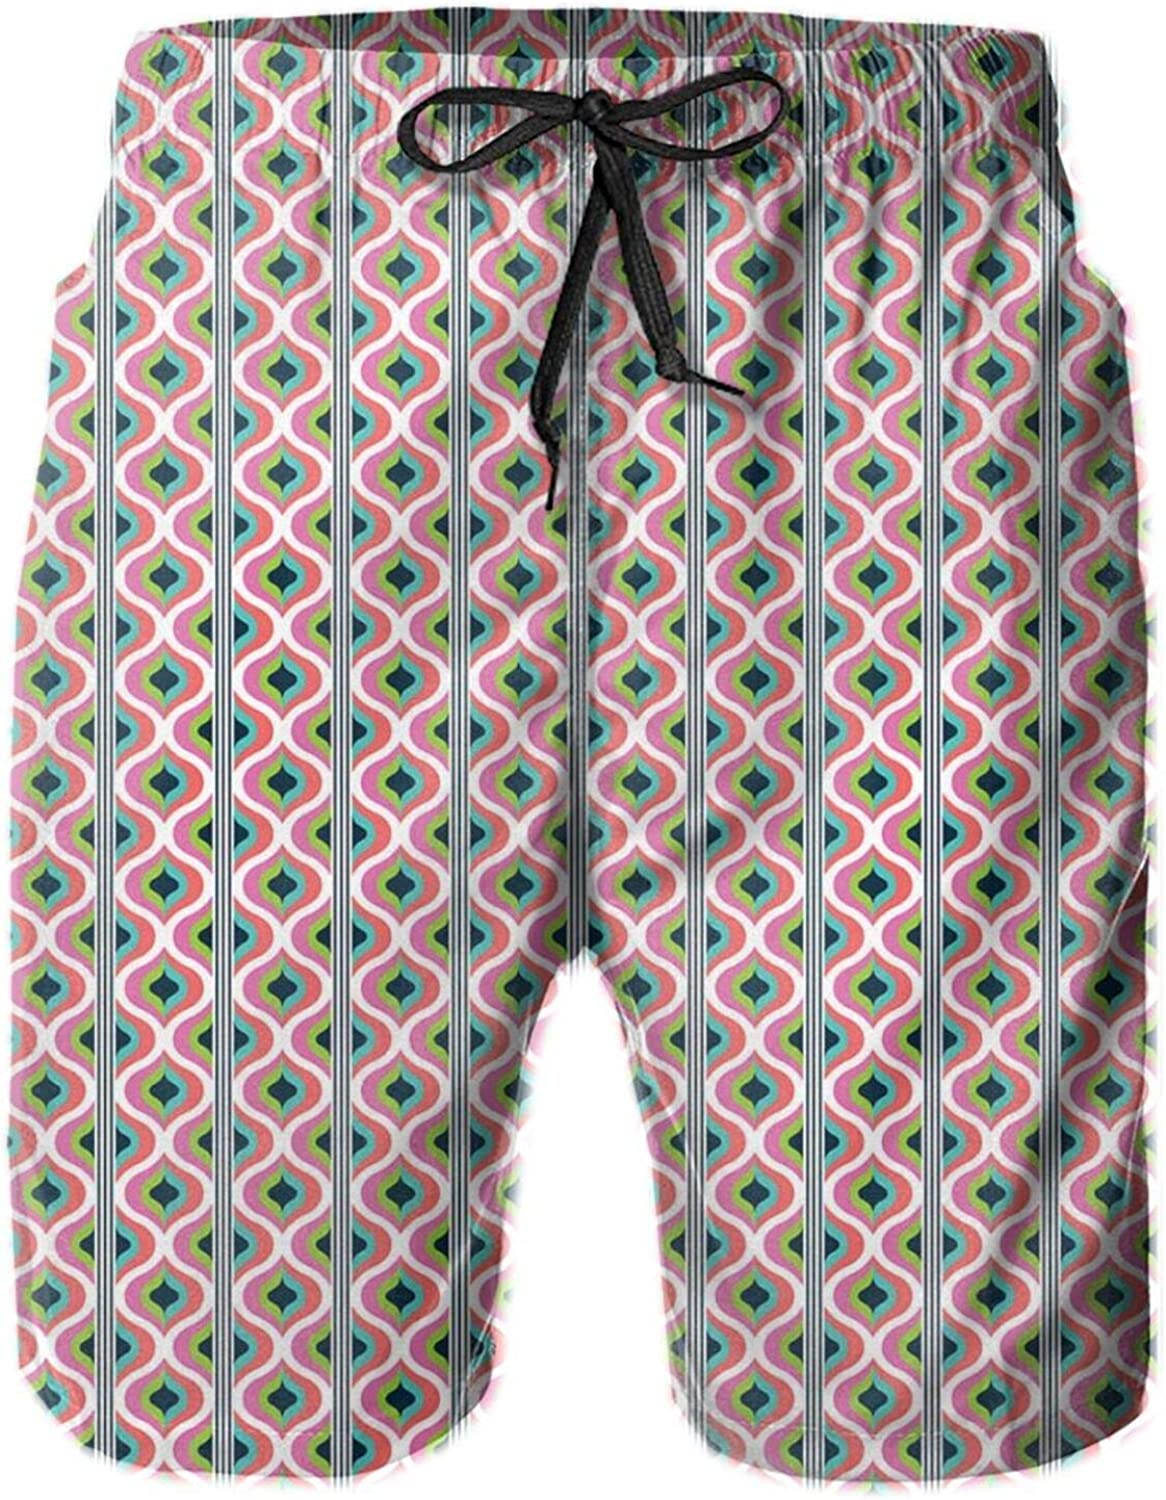 Retro 70s Inspired Look Artwork Pattern with Colorful Geometric Abstract Funky Waves Drawstring Waist Beach Shorts for Men Swim Trucks Board Shorts with Mesh Lining,L